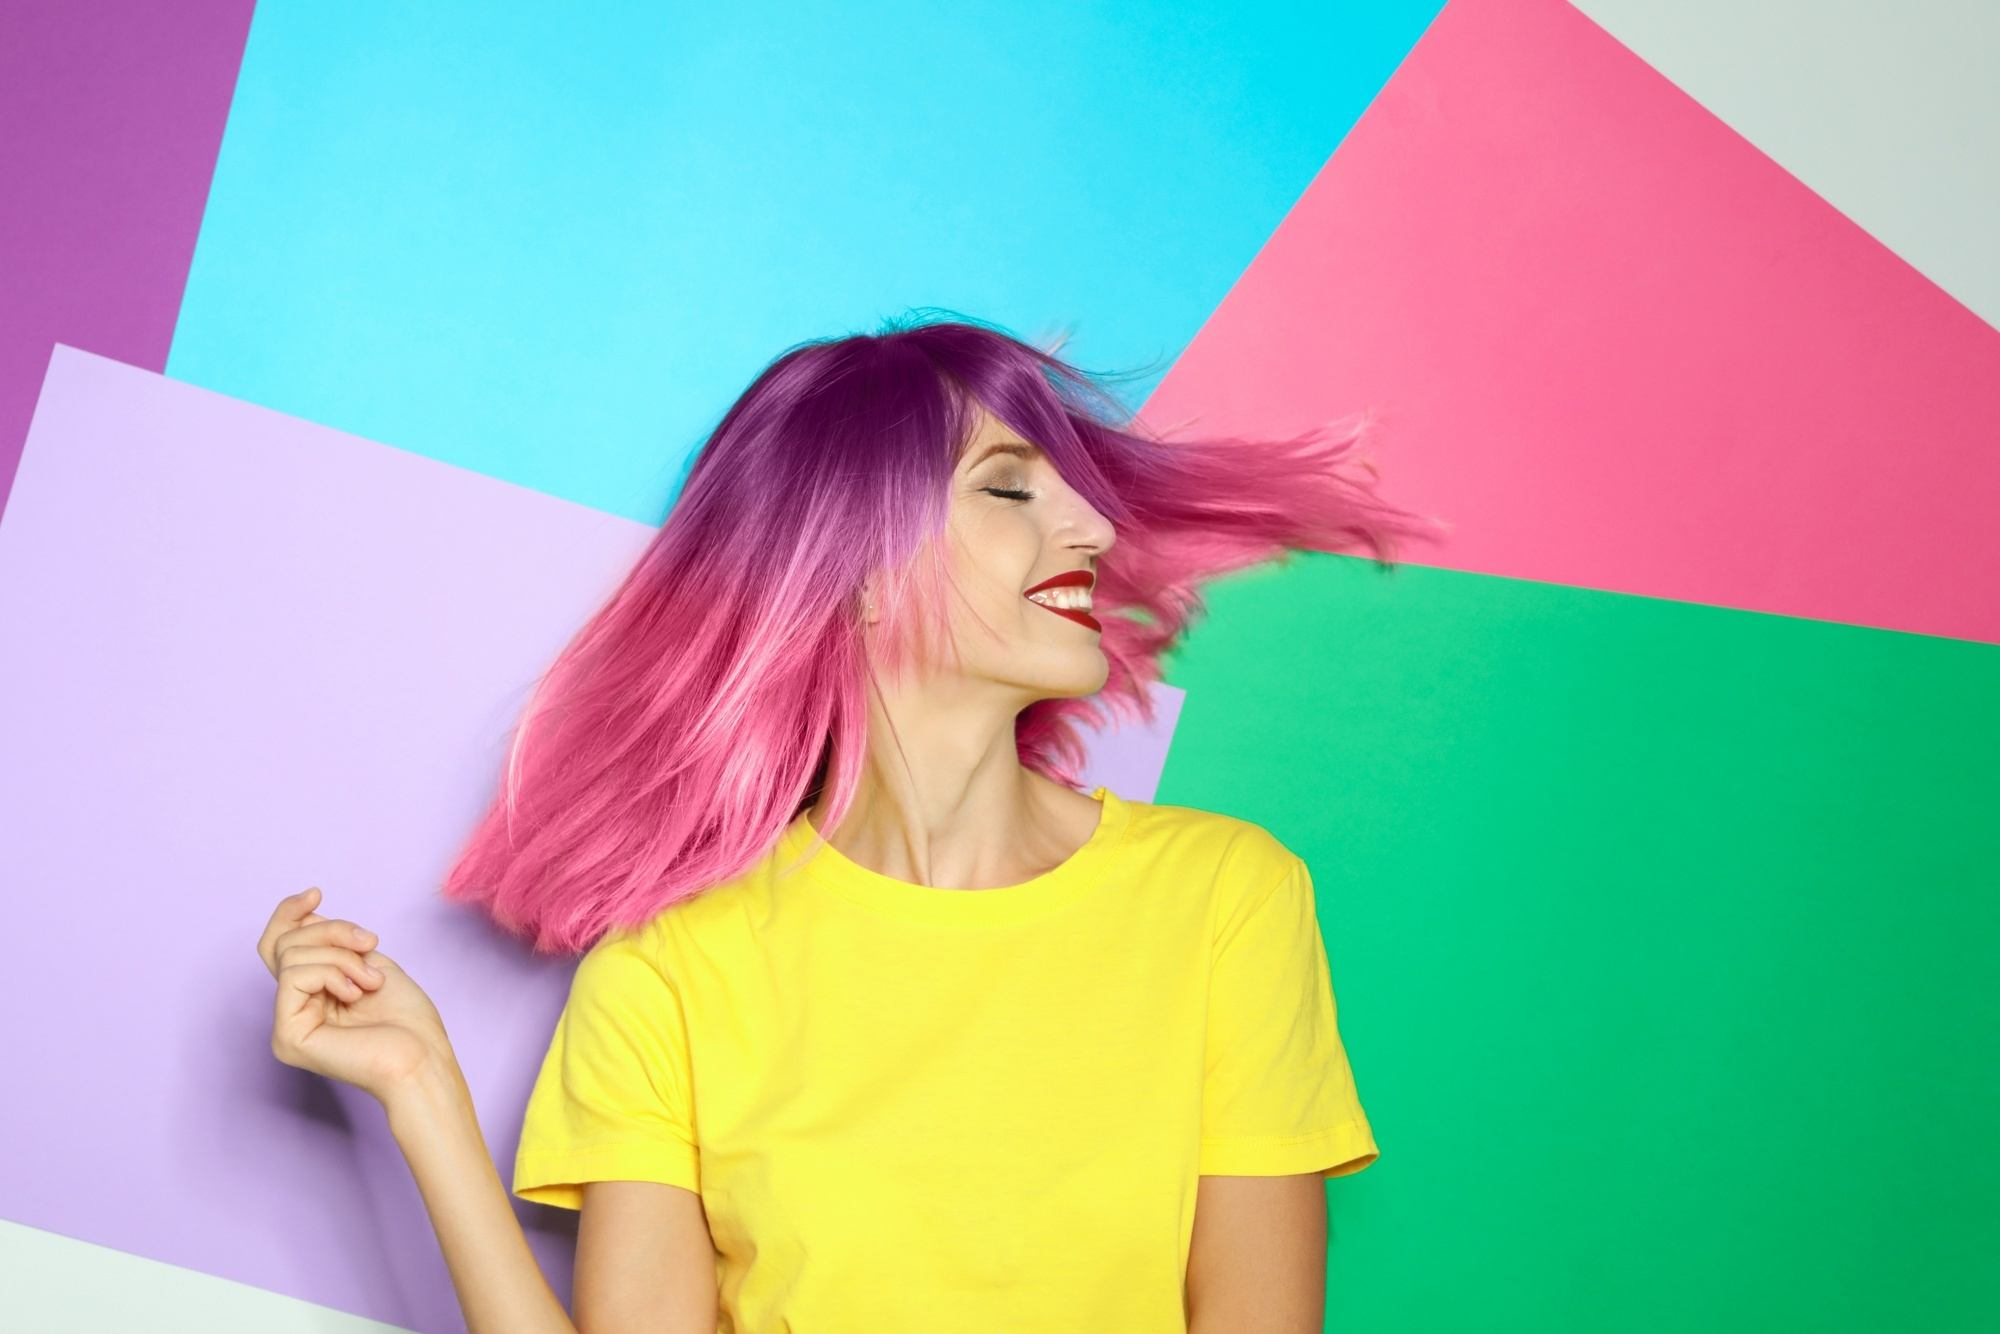 How often should you change your hair color: Woman with shoulder-length pink ombre hair wearing a yellow shirt against a colorful background